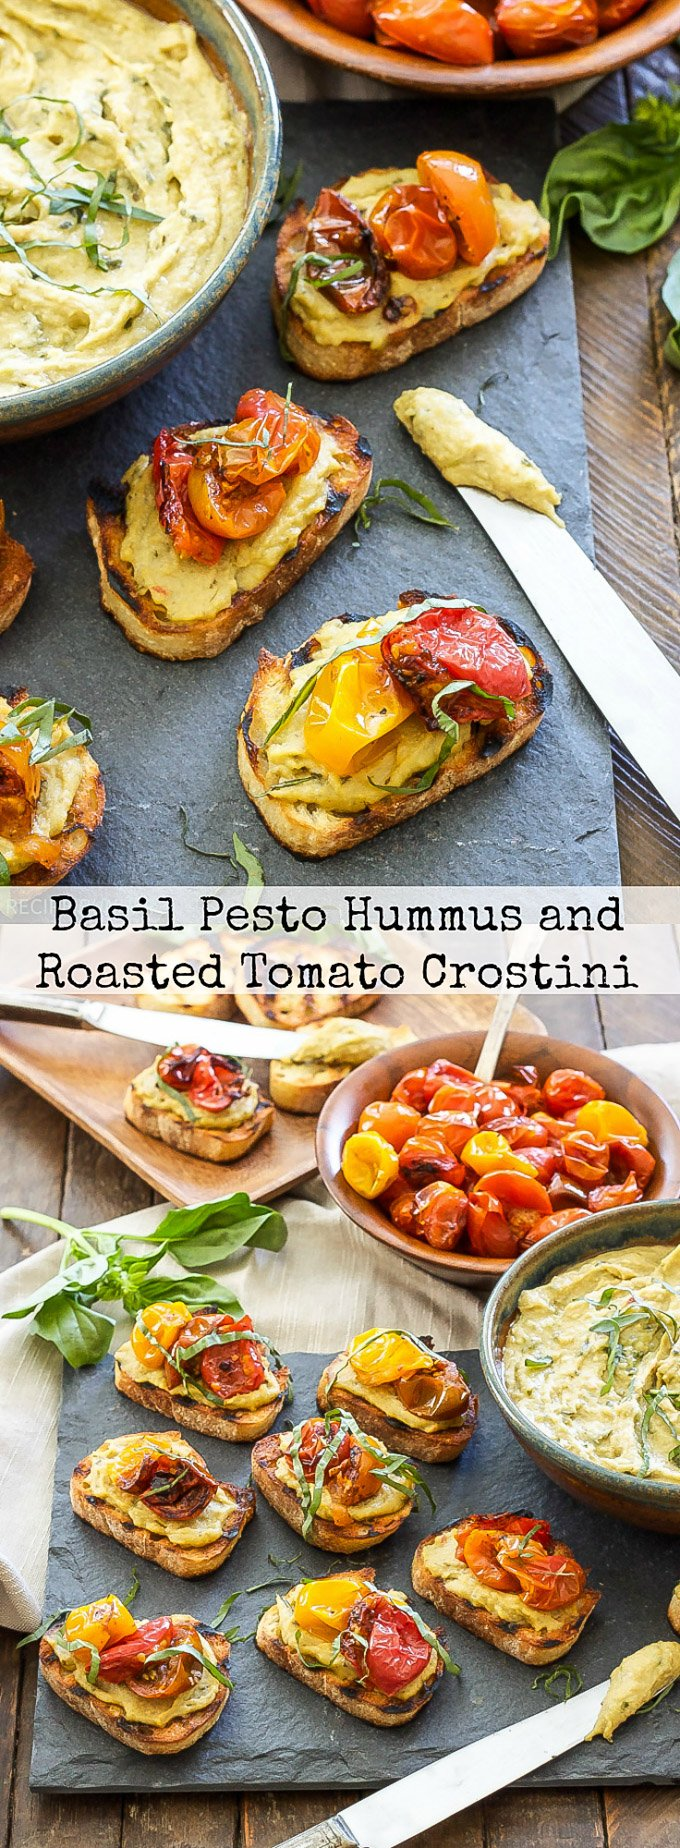 Basil Pesto Hummus and Roasted Tomato Crostini | You only need 4 ingredients to make this addicting little appetizer! #ad